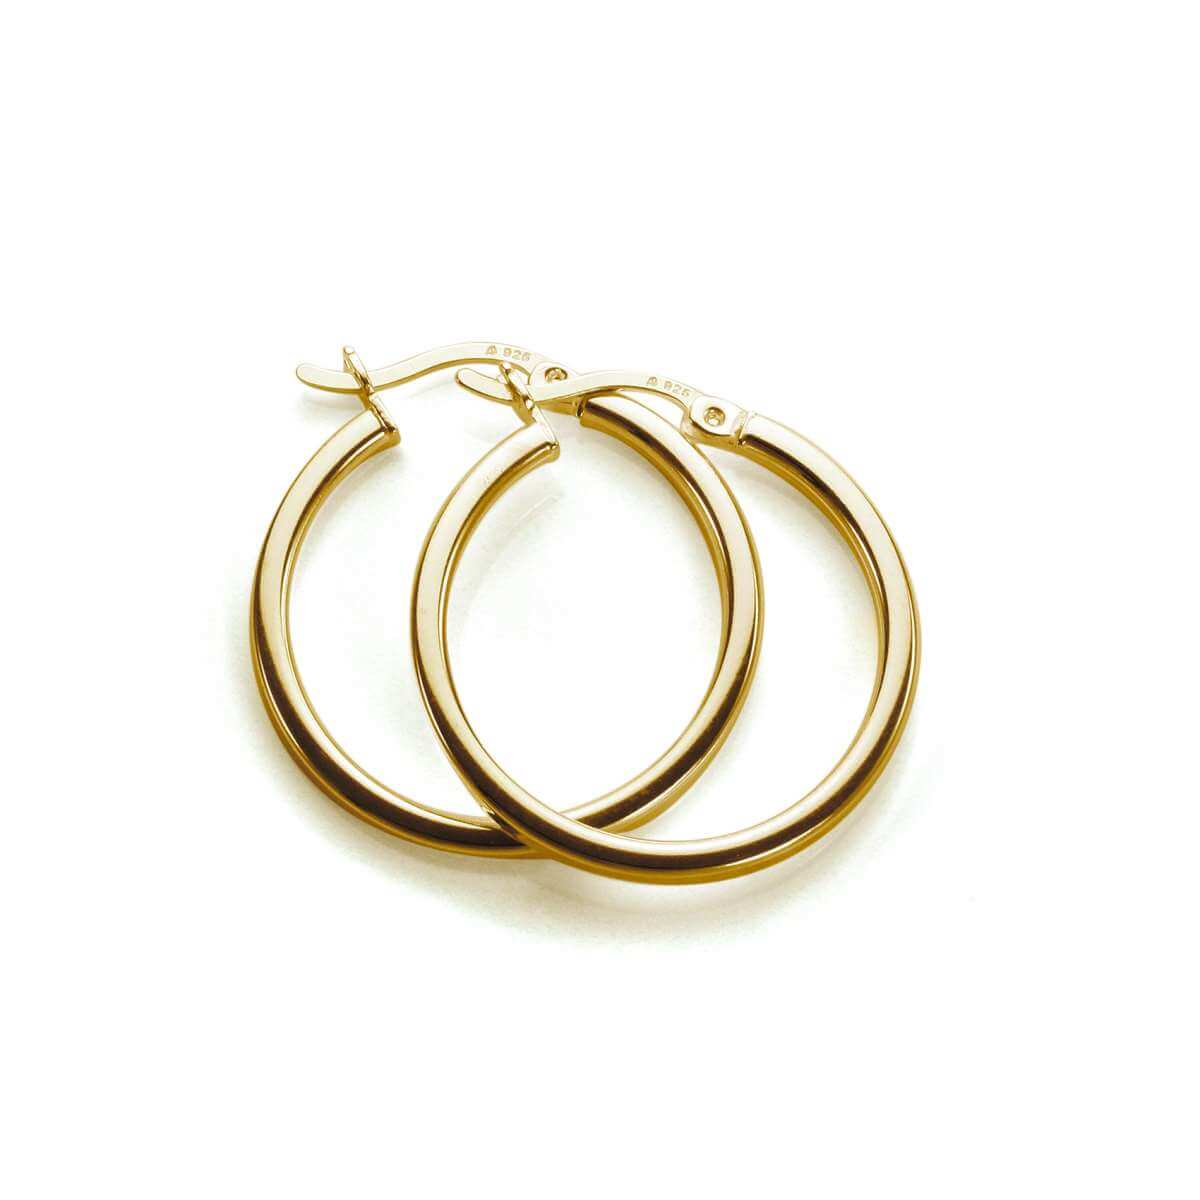 Gold Plated Sterling Silver 20mm Square Tube Hoop Earrings